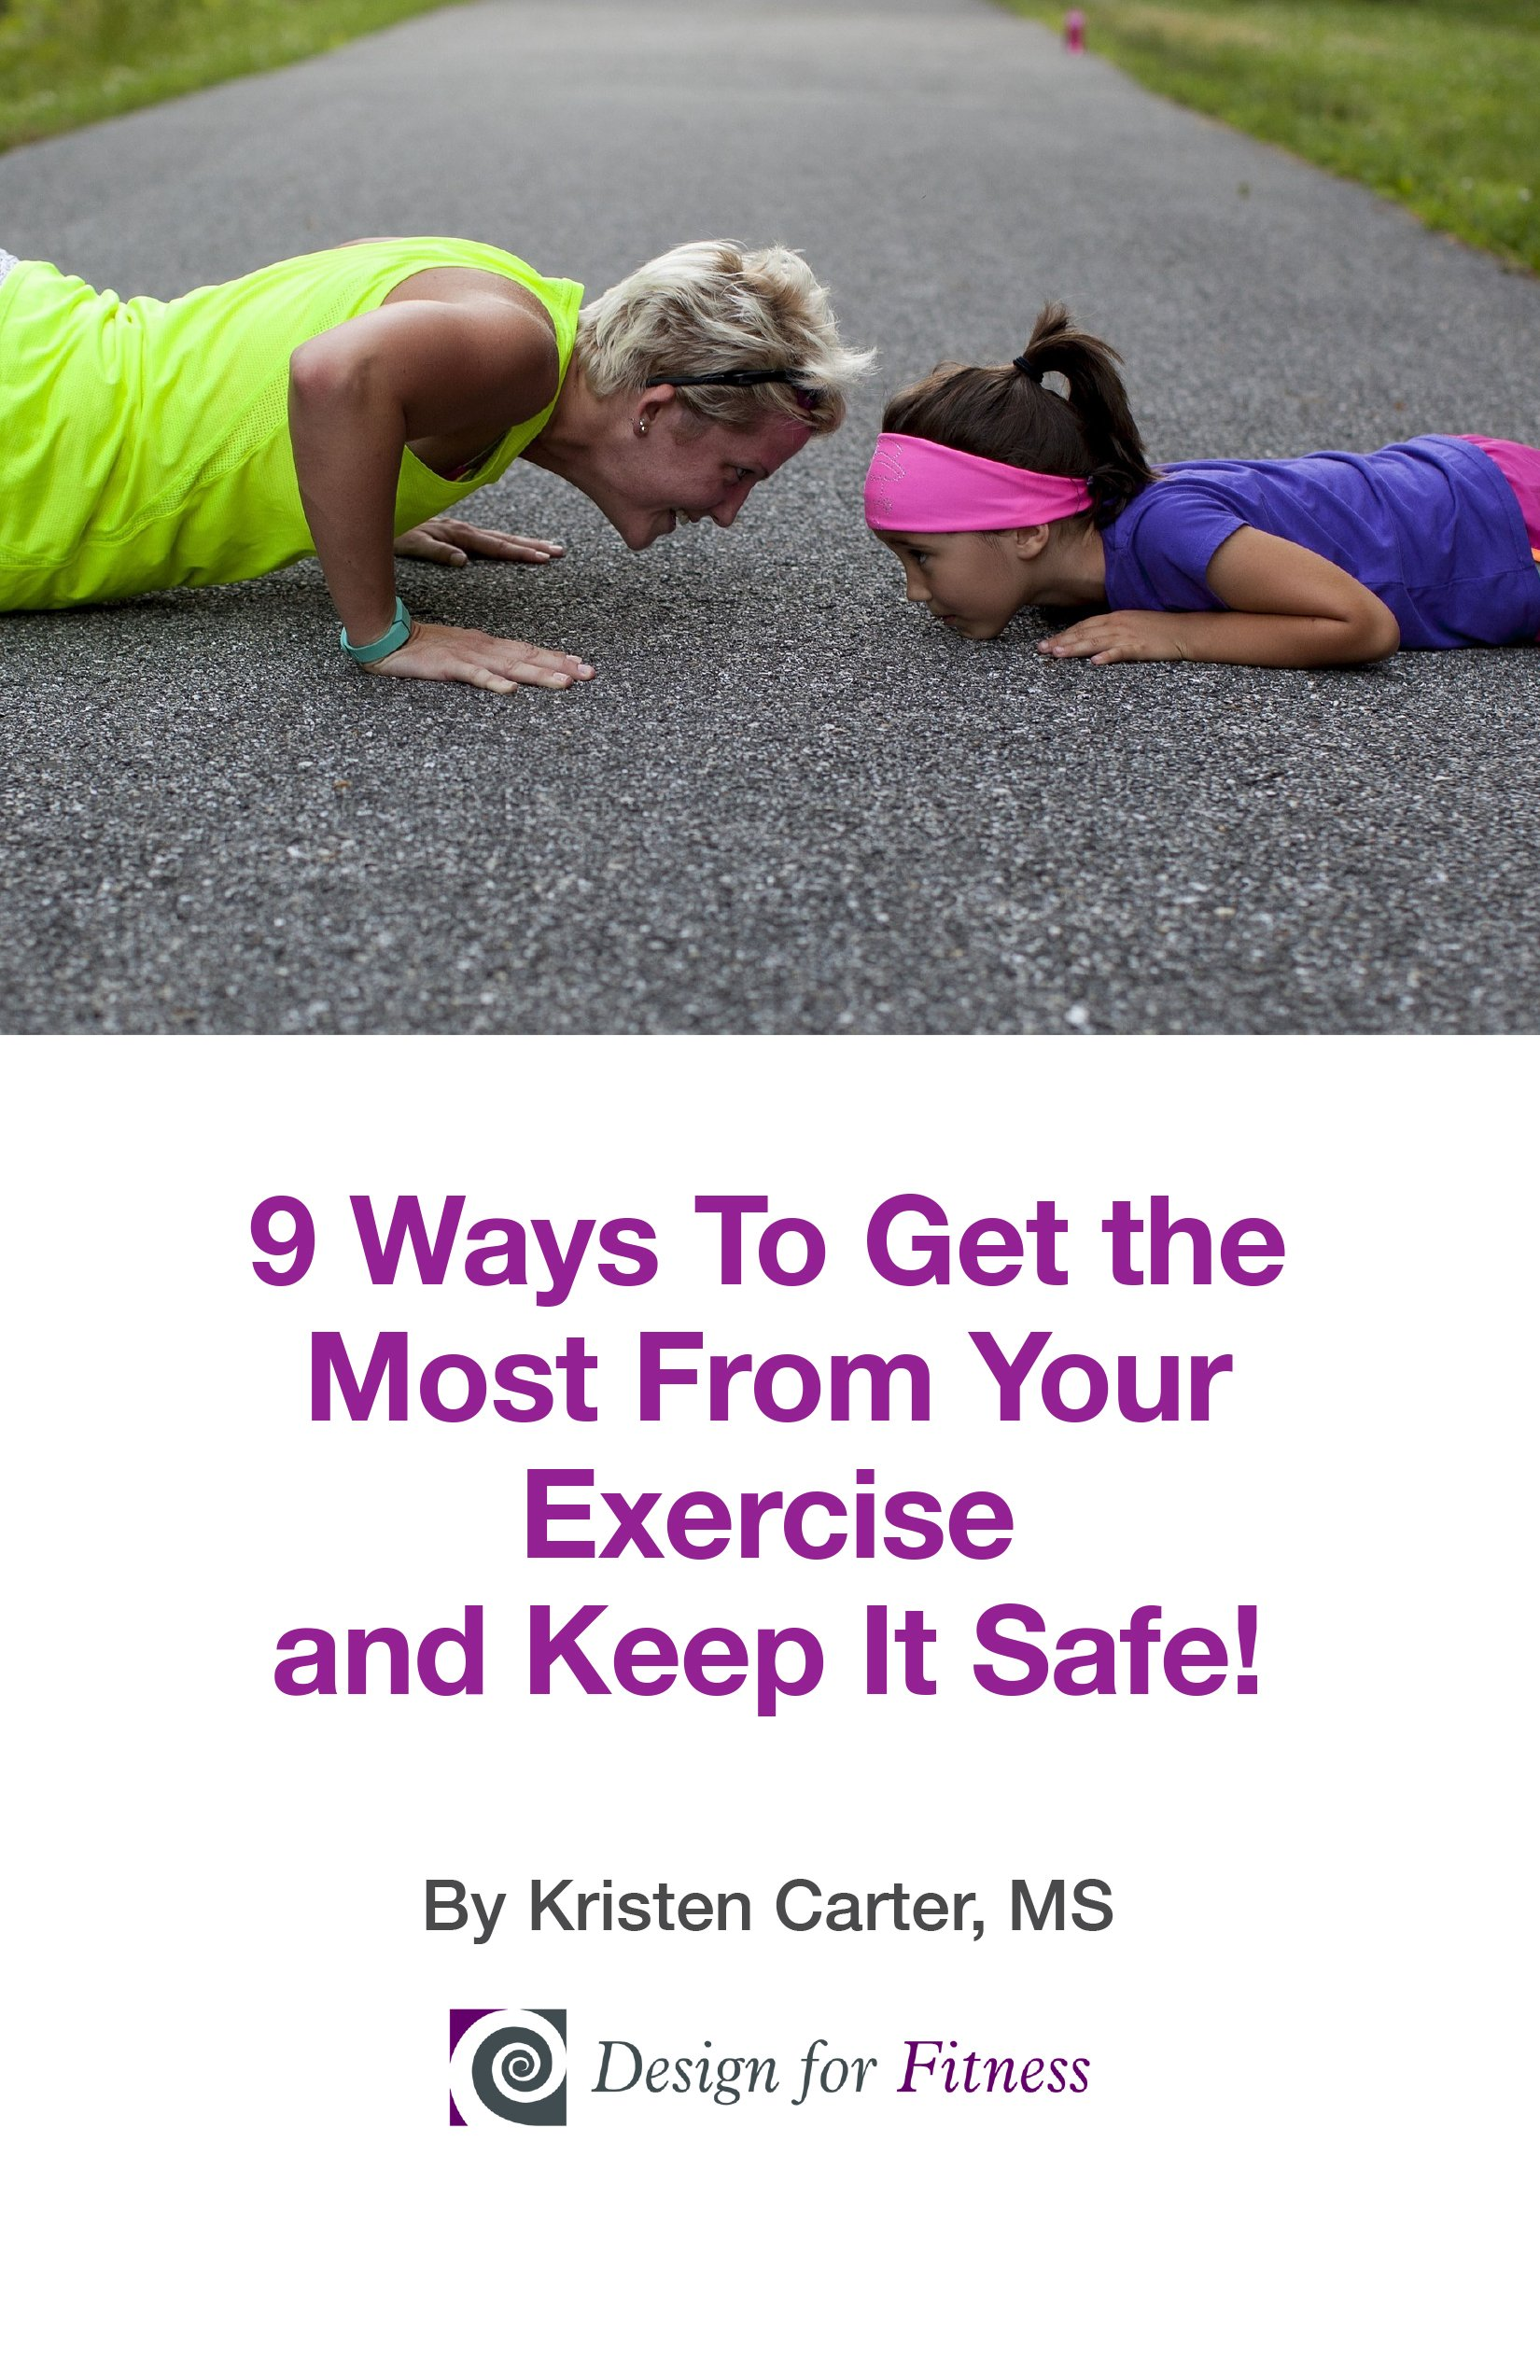 9 Ways To Get the Most From Your Exercise and Keep It Safe!